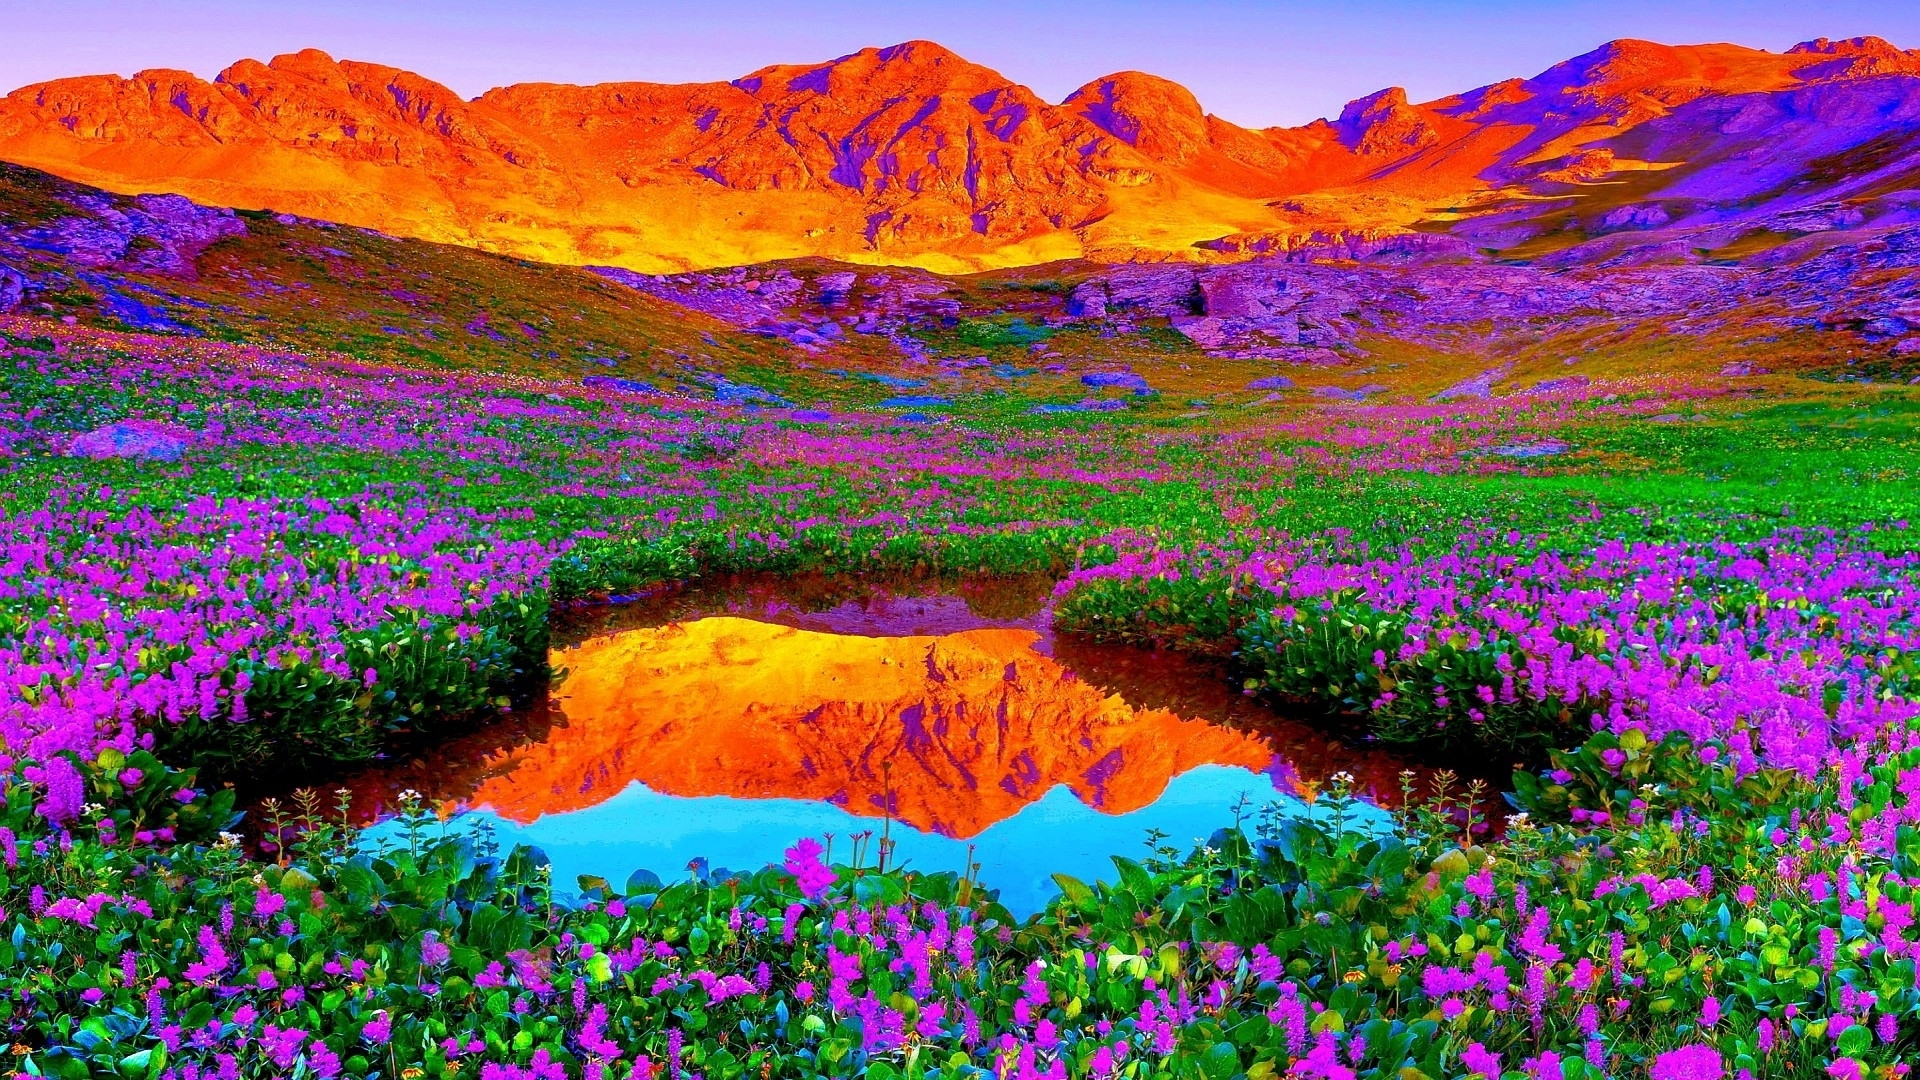 backgrounds nature hd background image images new with wallpaper